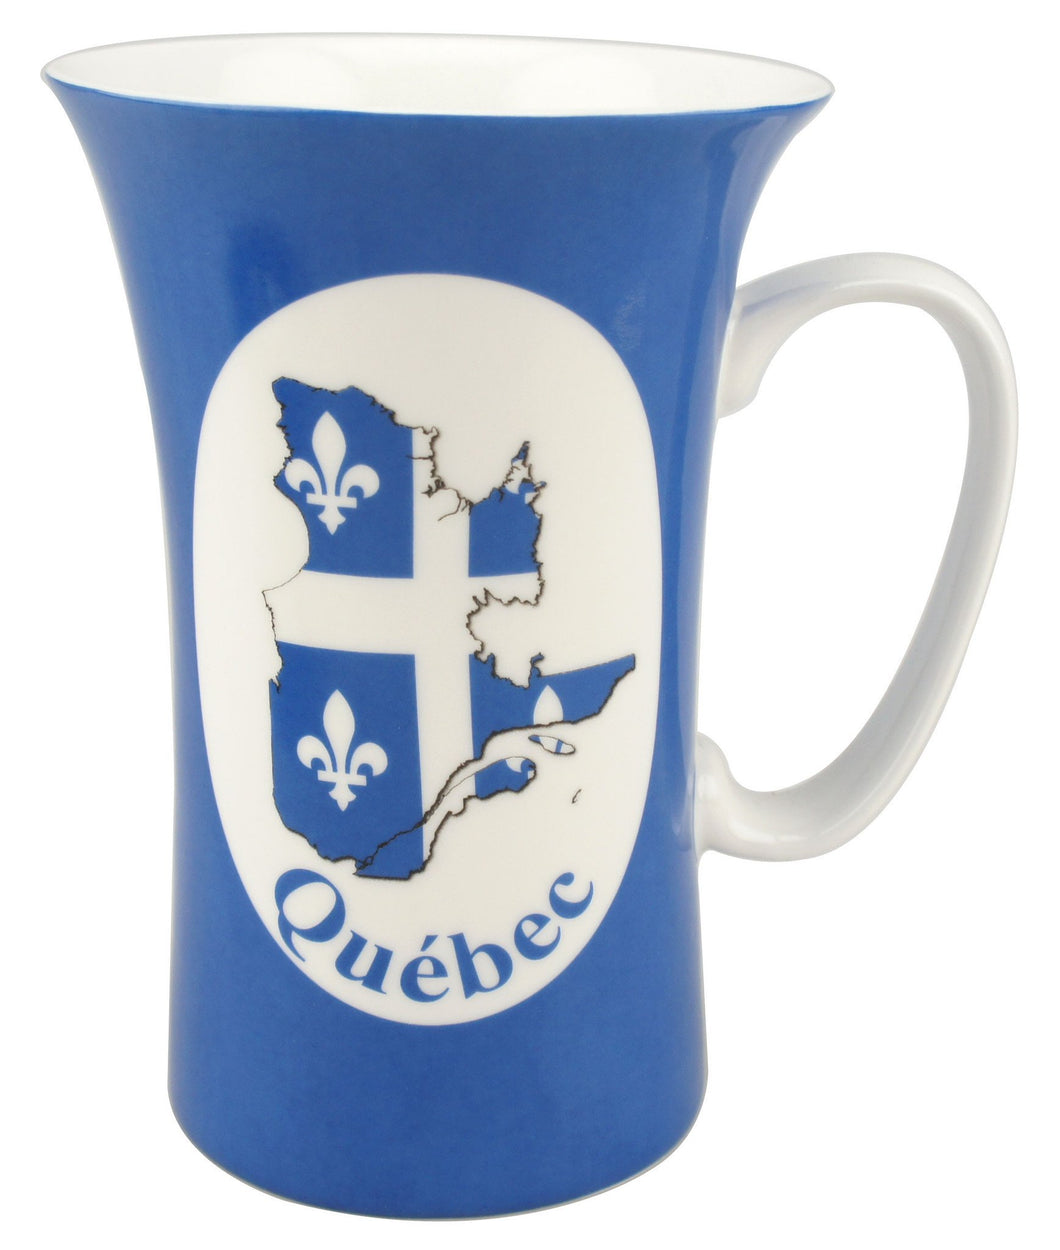 Quebec Imperial Mug - McIntosh Shop